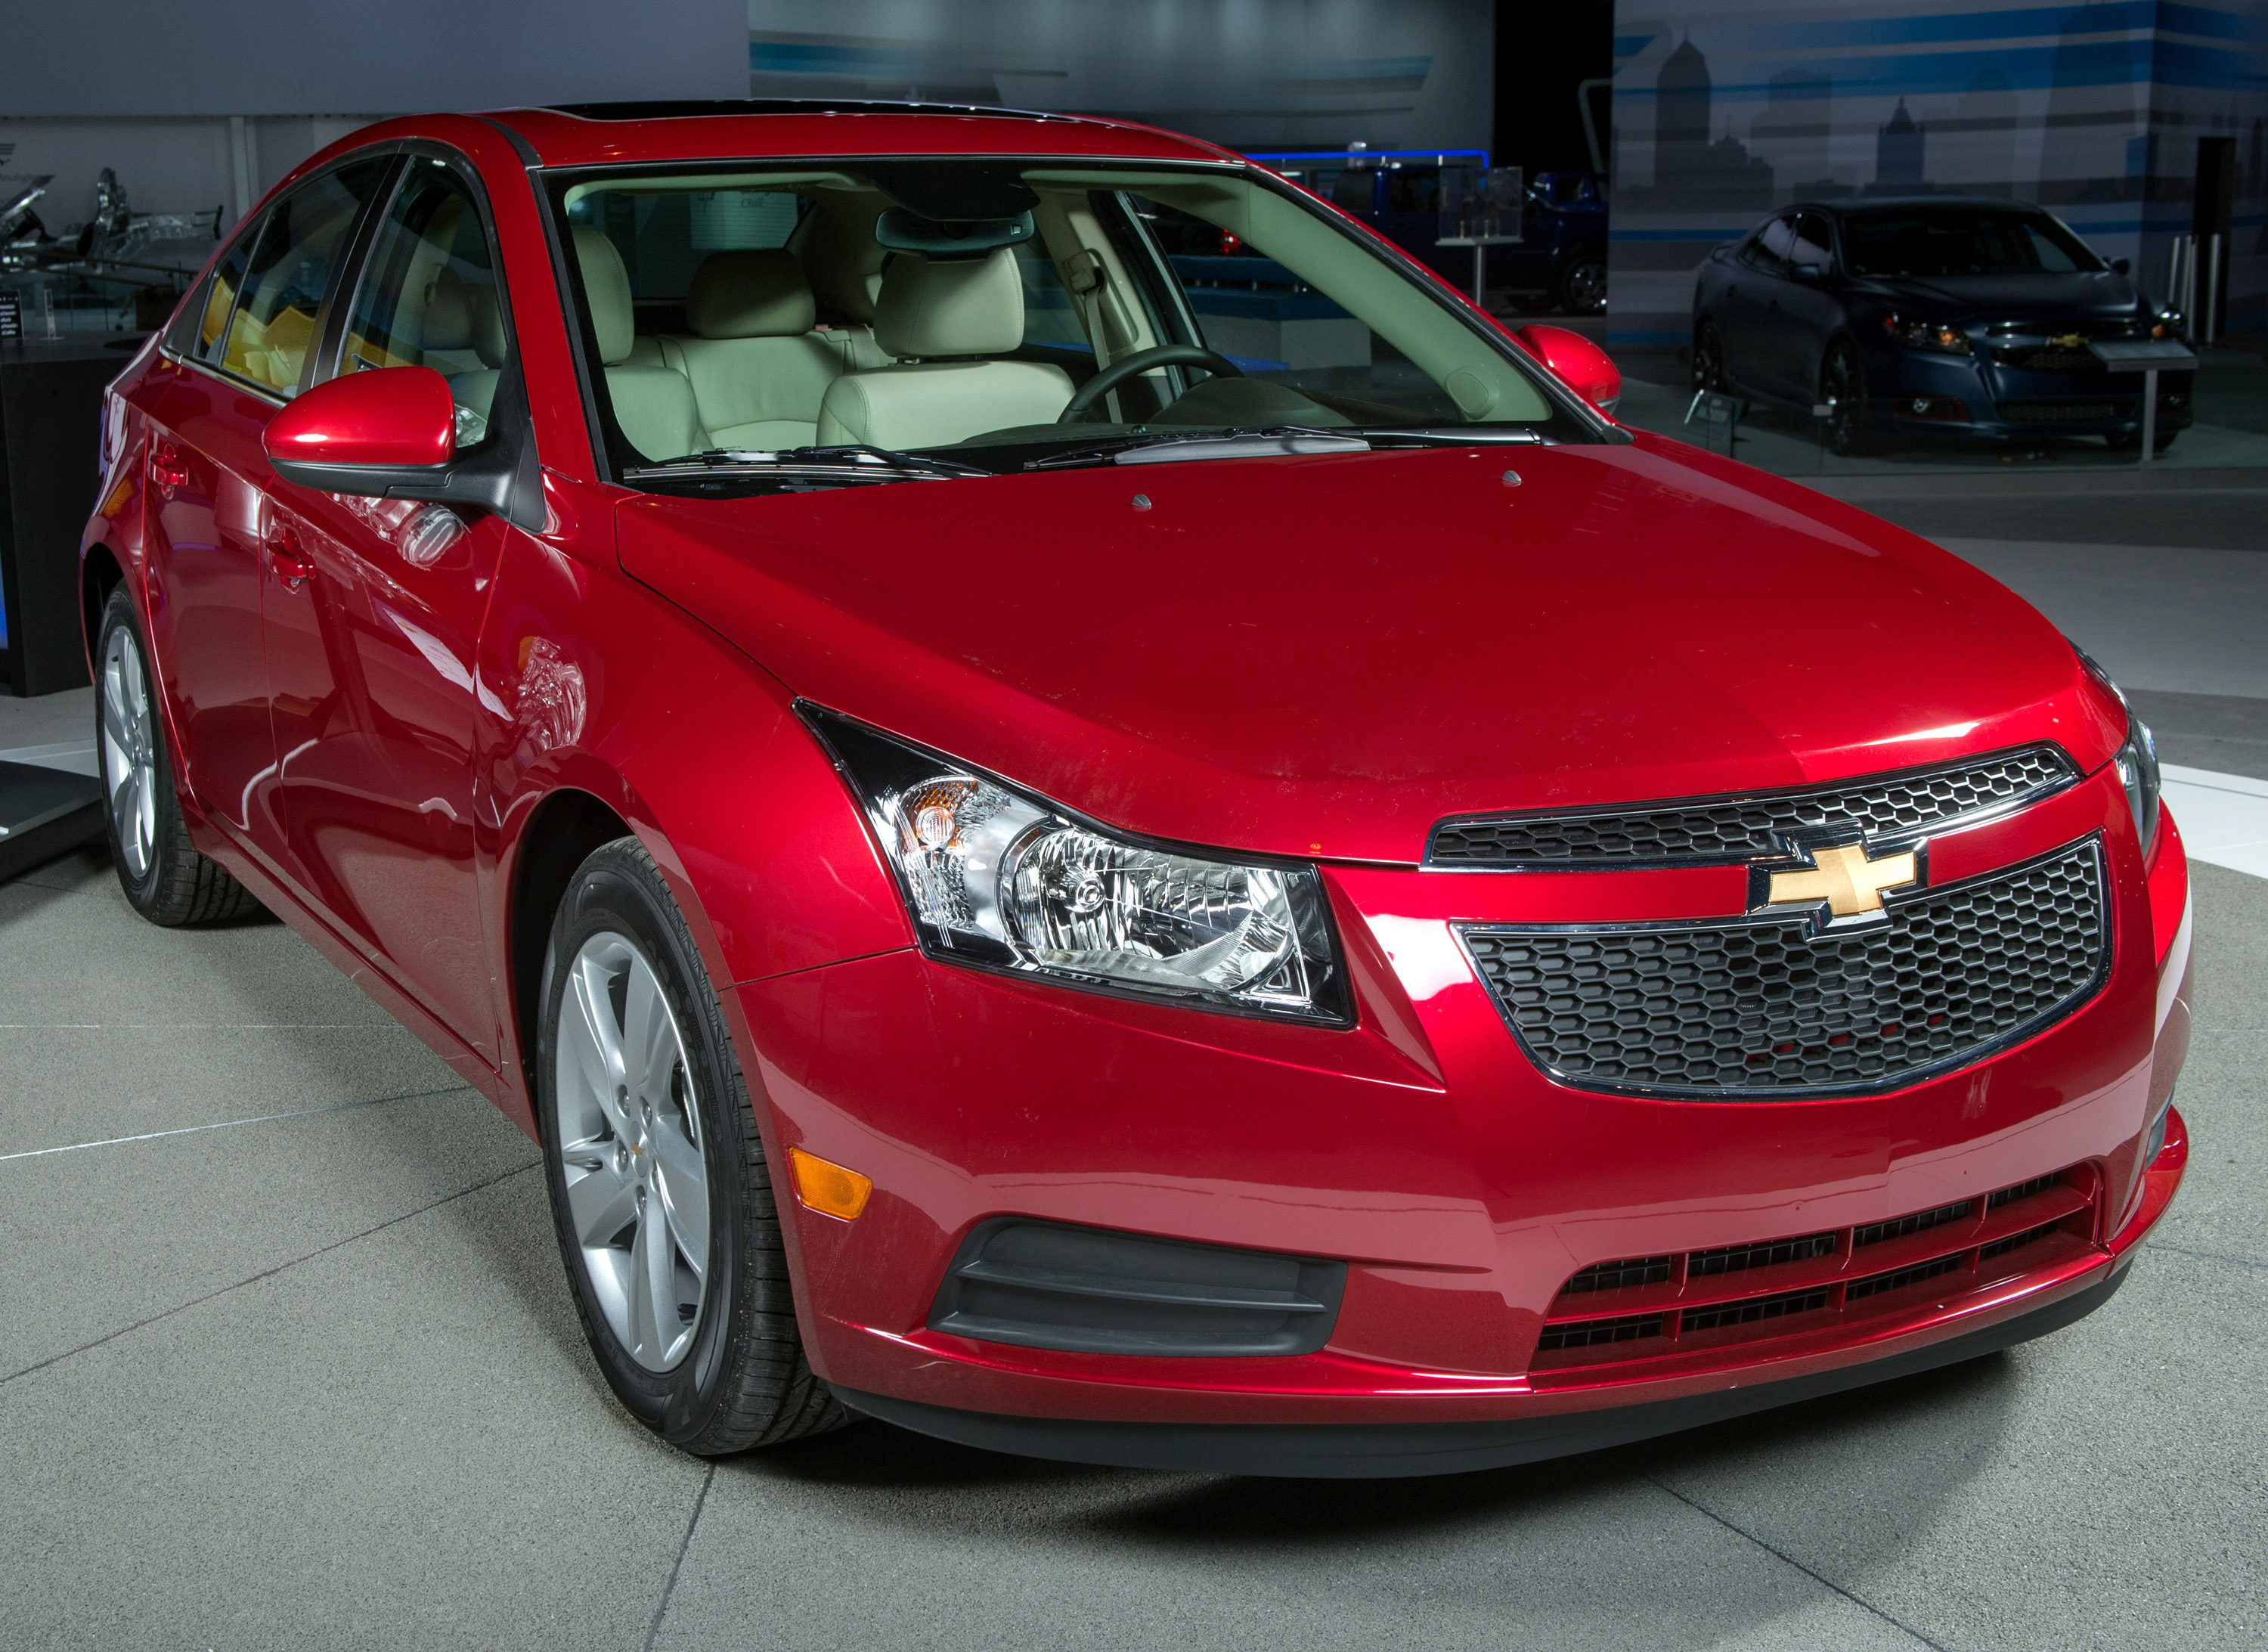 diesel hd cruze front turbo wallpaper images of c chevrolet cars clean